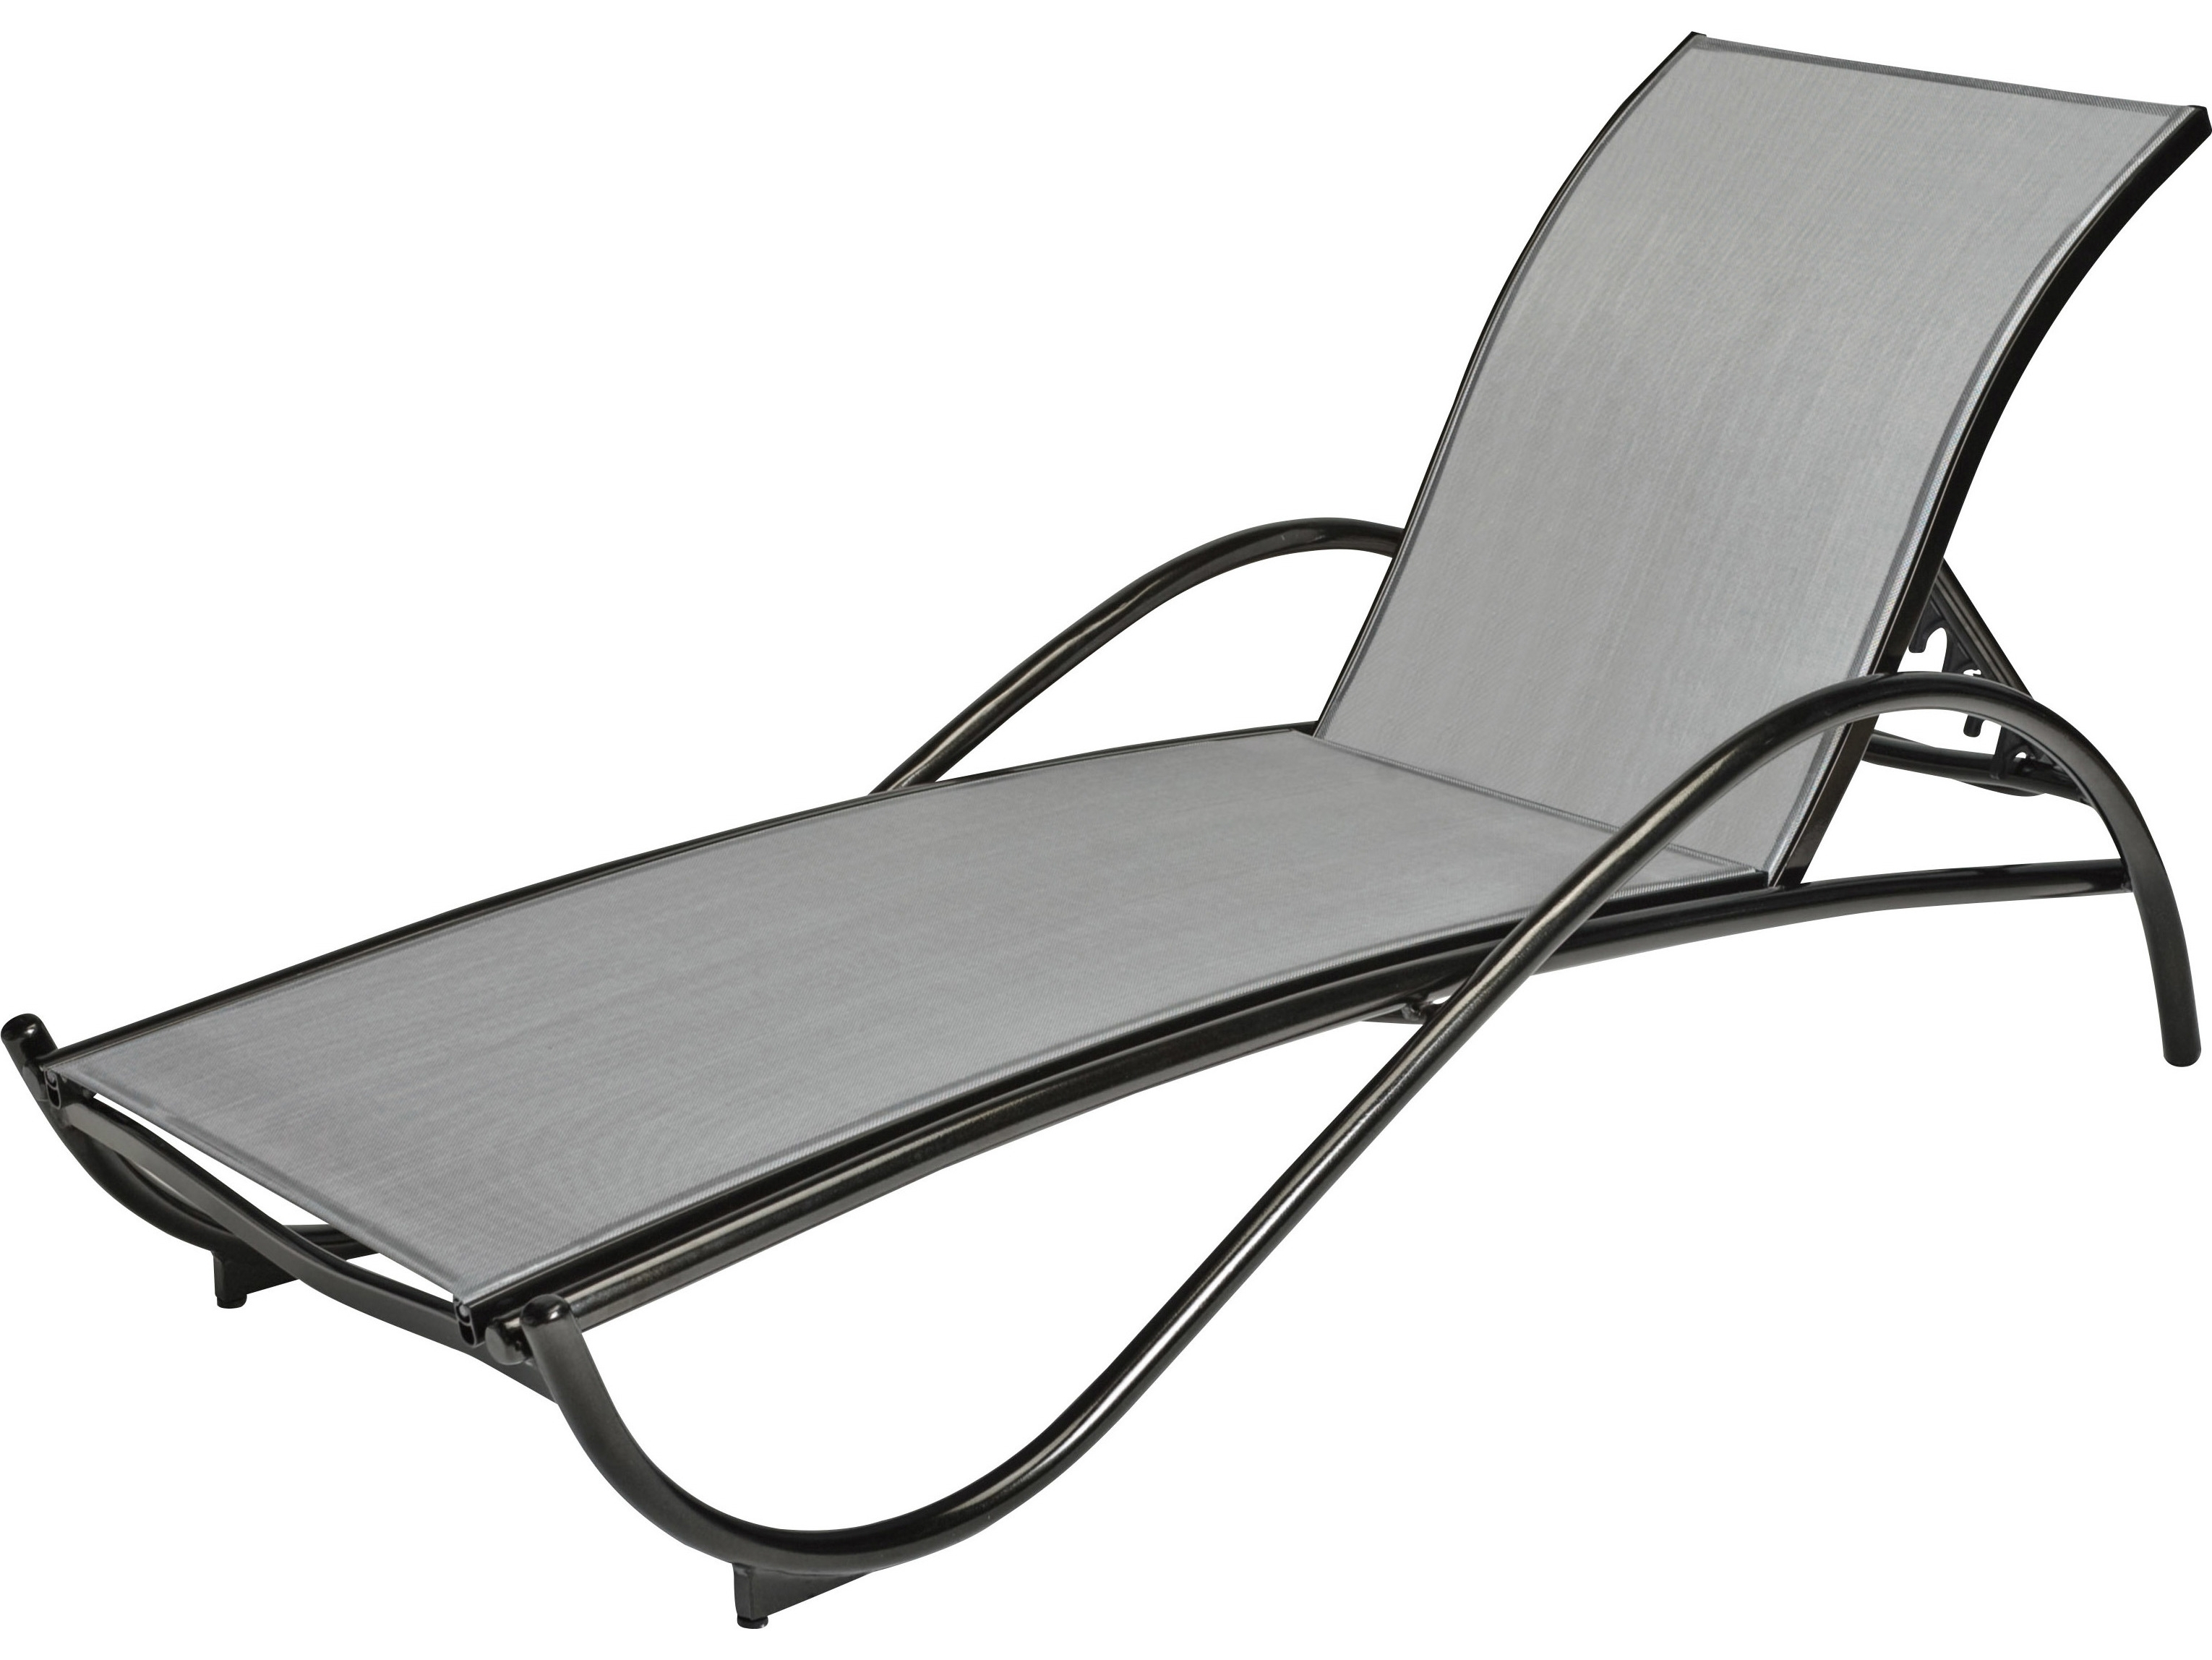 Aluminum Chaise Lounge Outdoor Chairs Throughout Newest Picture 4 Of 38 – Lounge Outdoor Chairs Elegant Woodard Tribeca (View 3 of 15)